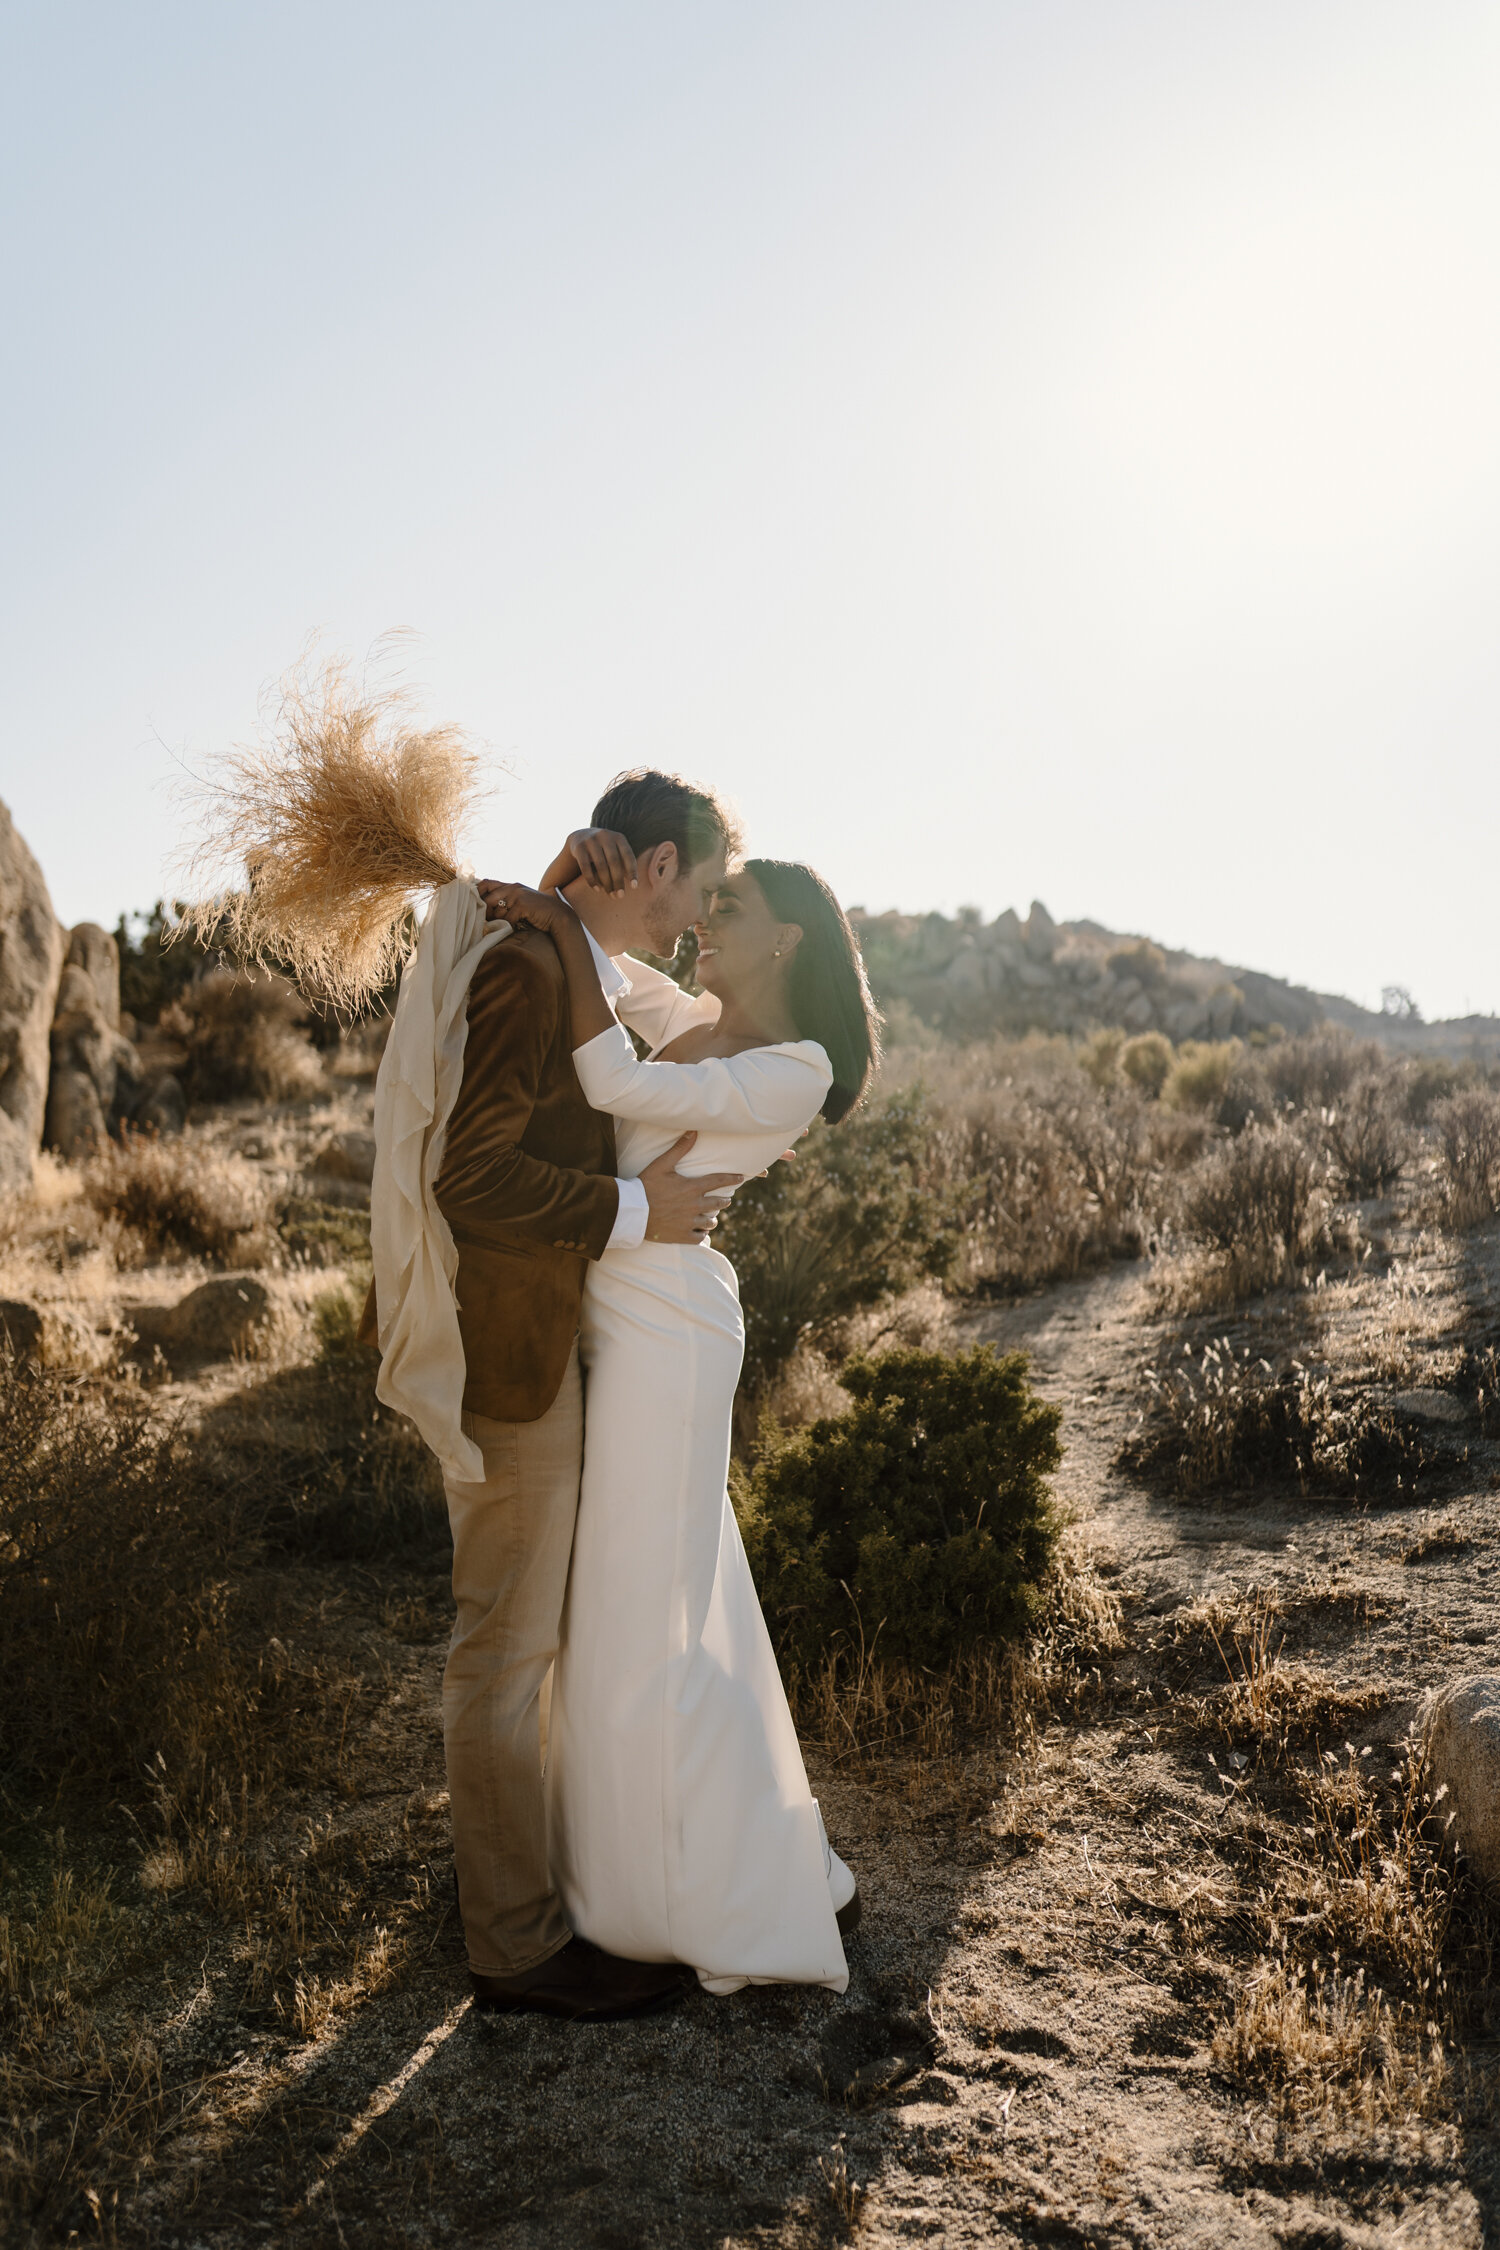 Bride and Groom at their intimate elopement